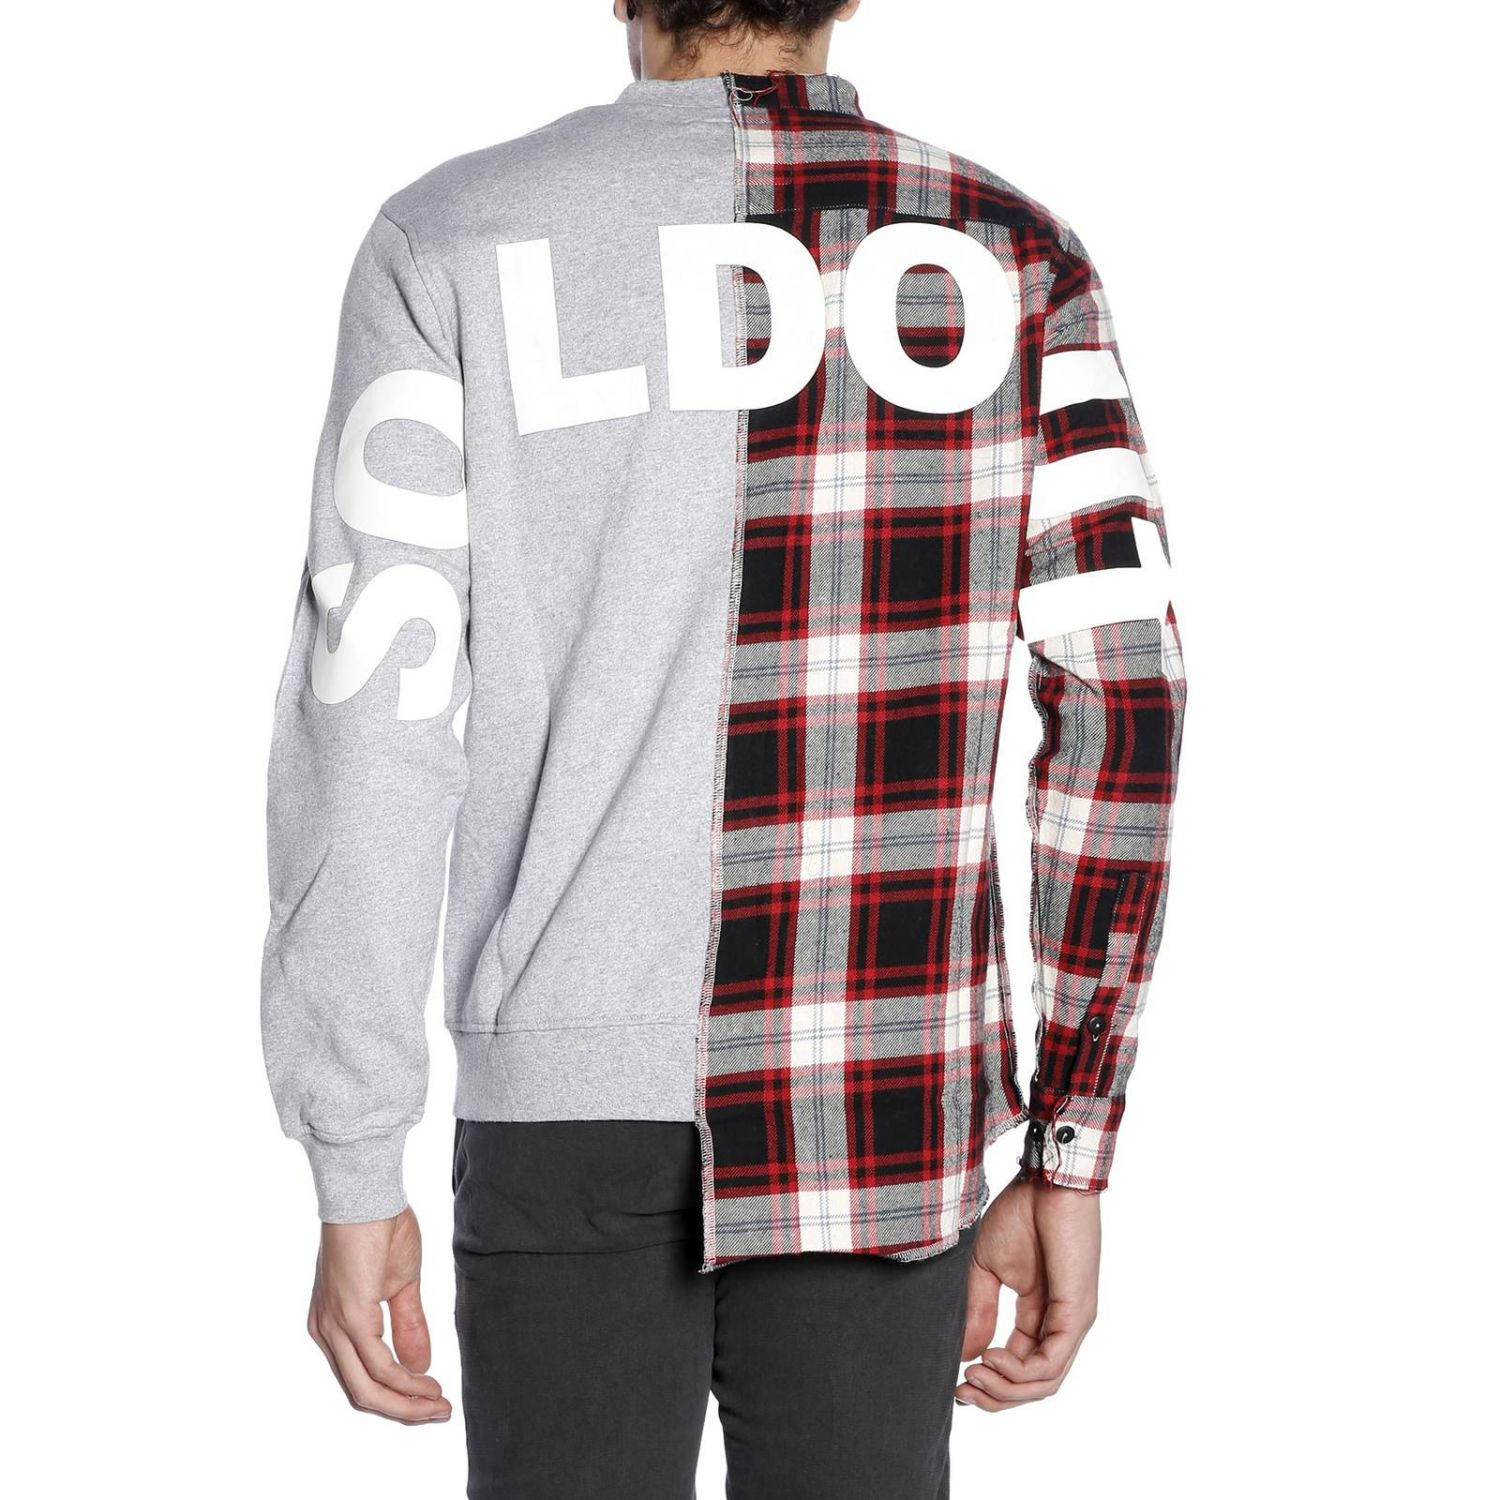 Sweater men Sold Out red 3